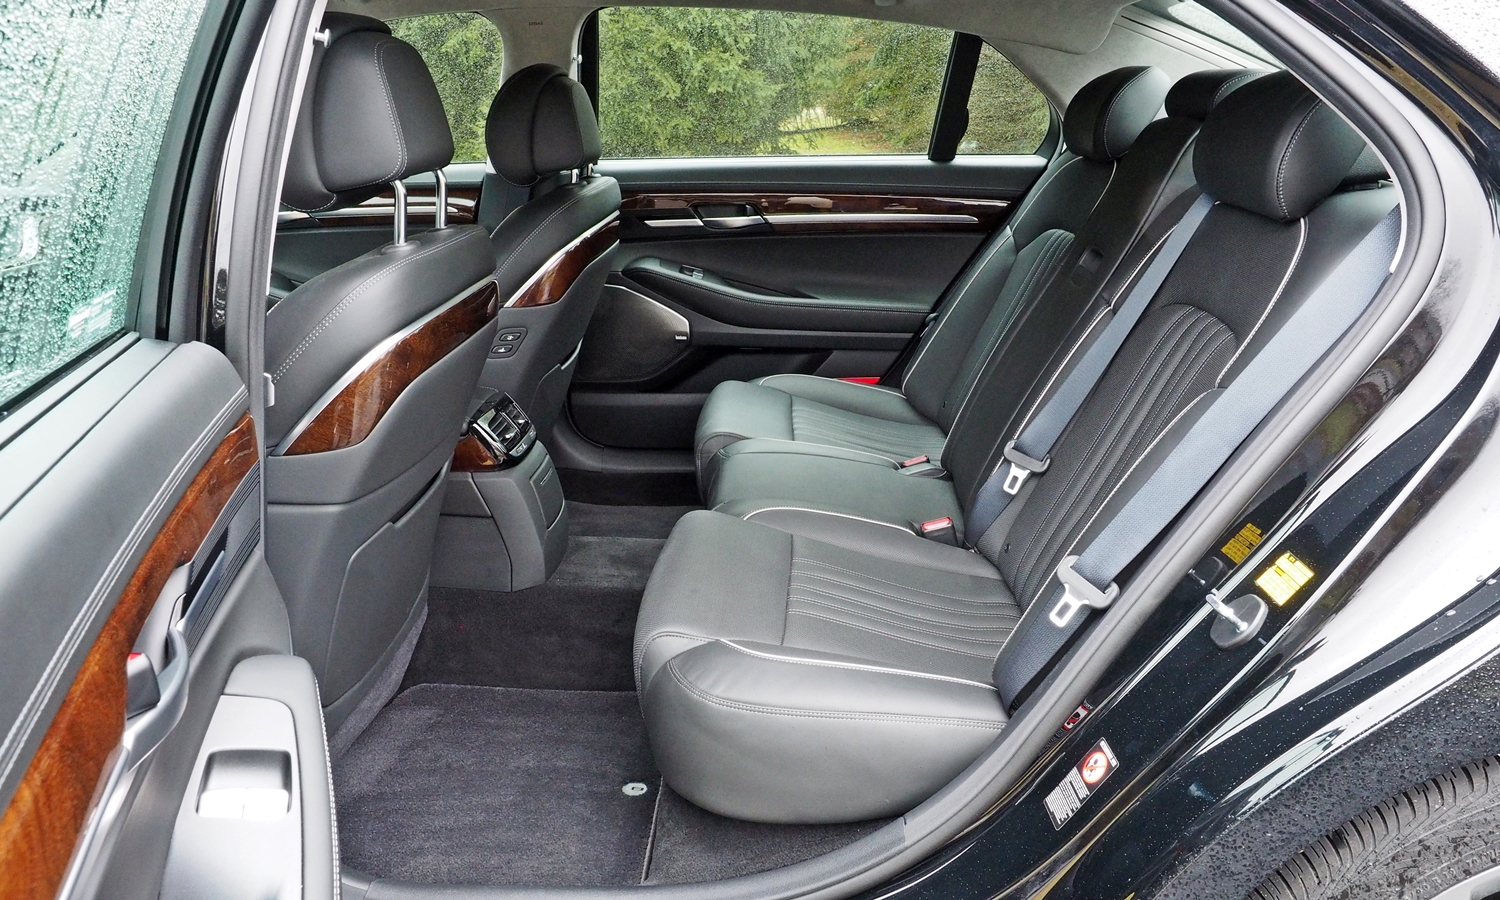 Genesis G90 Photos: 2017 Genesis G90 rear seat